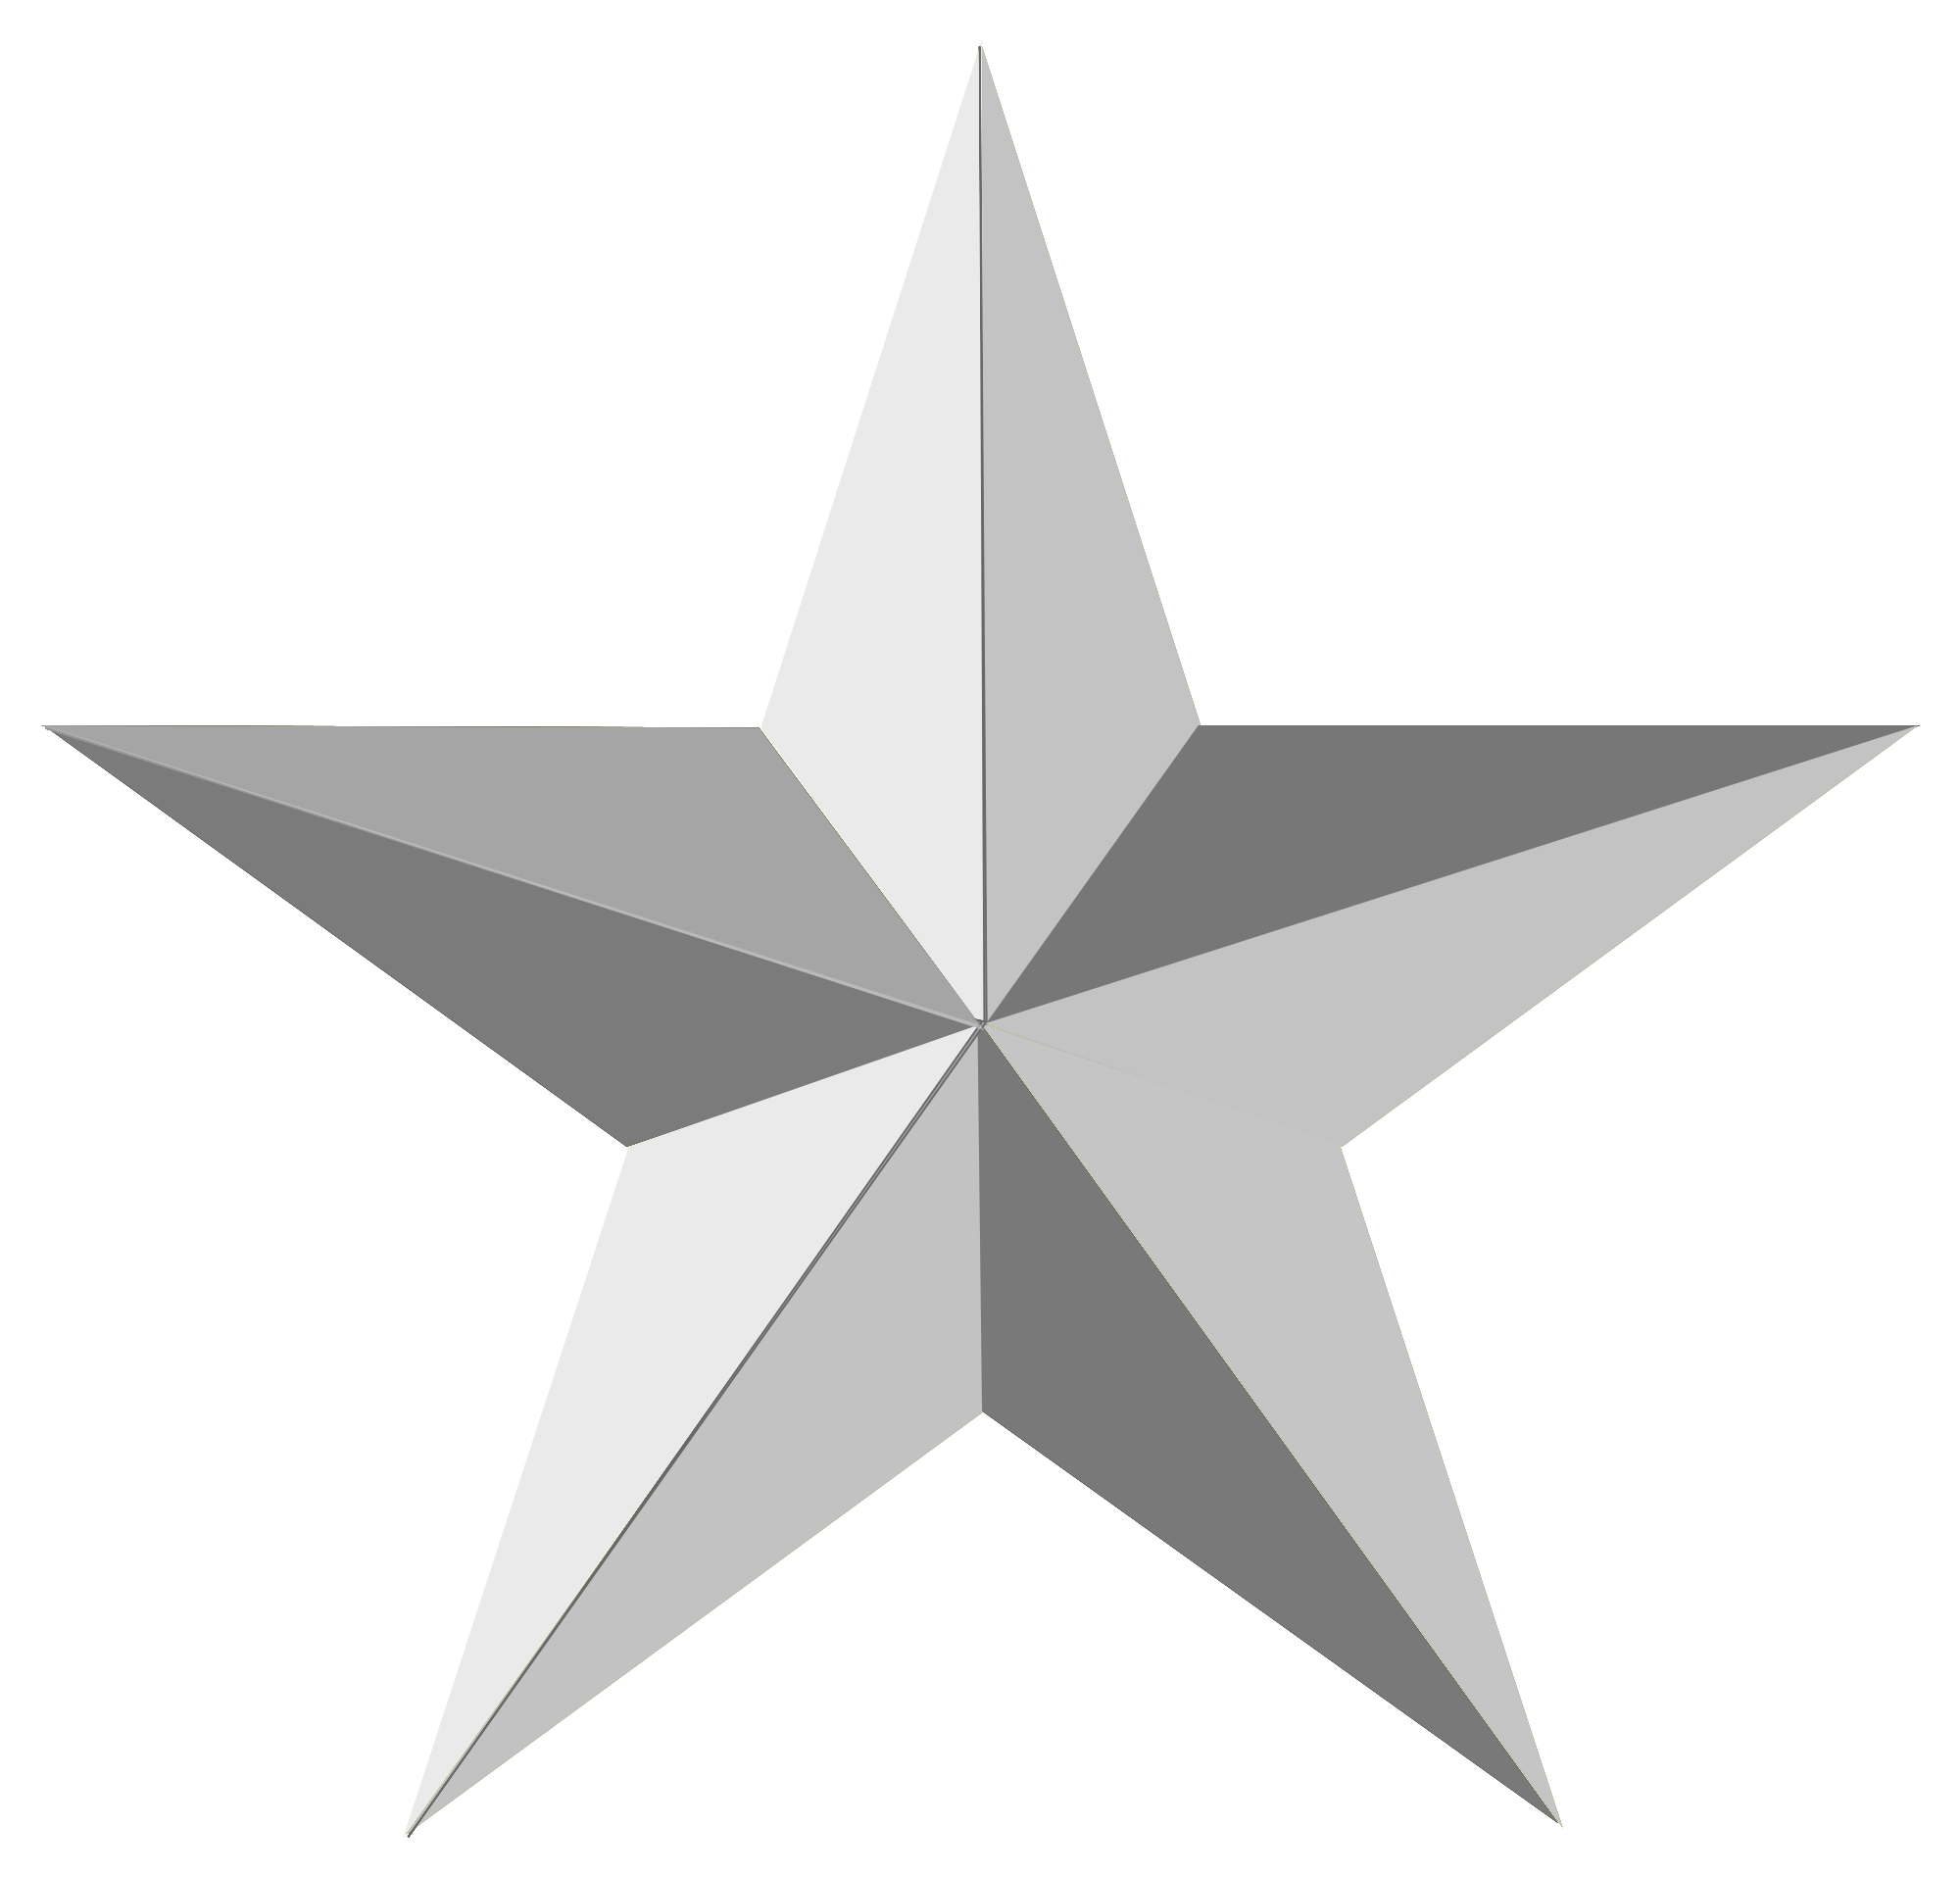 gray star png picture background transparent #9471